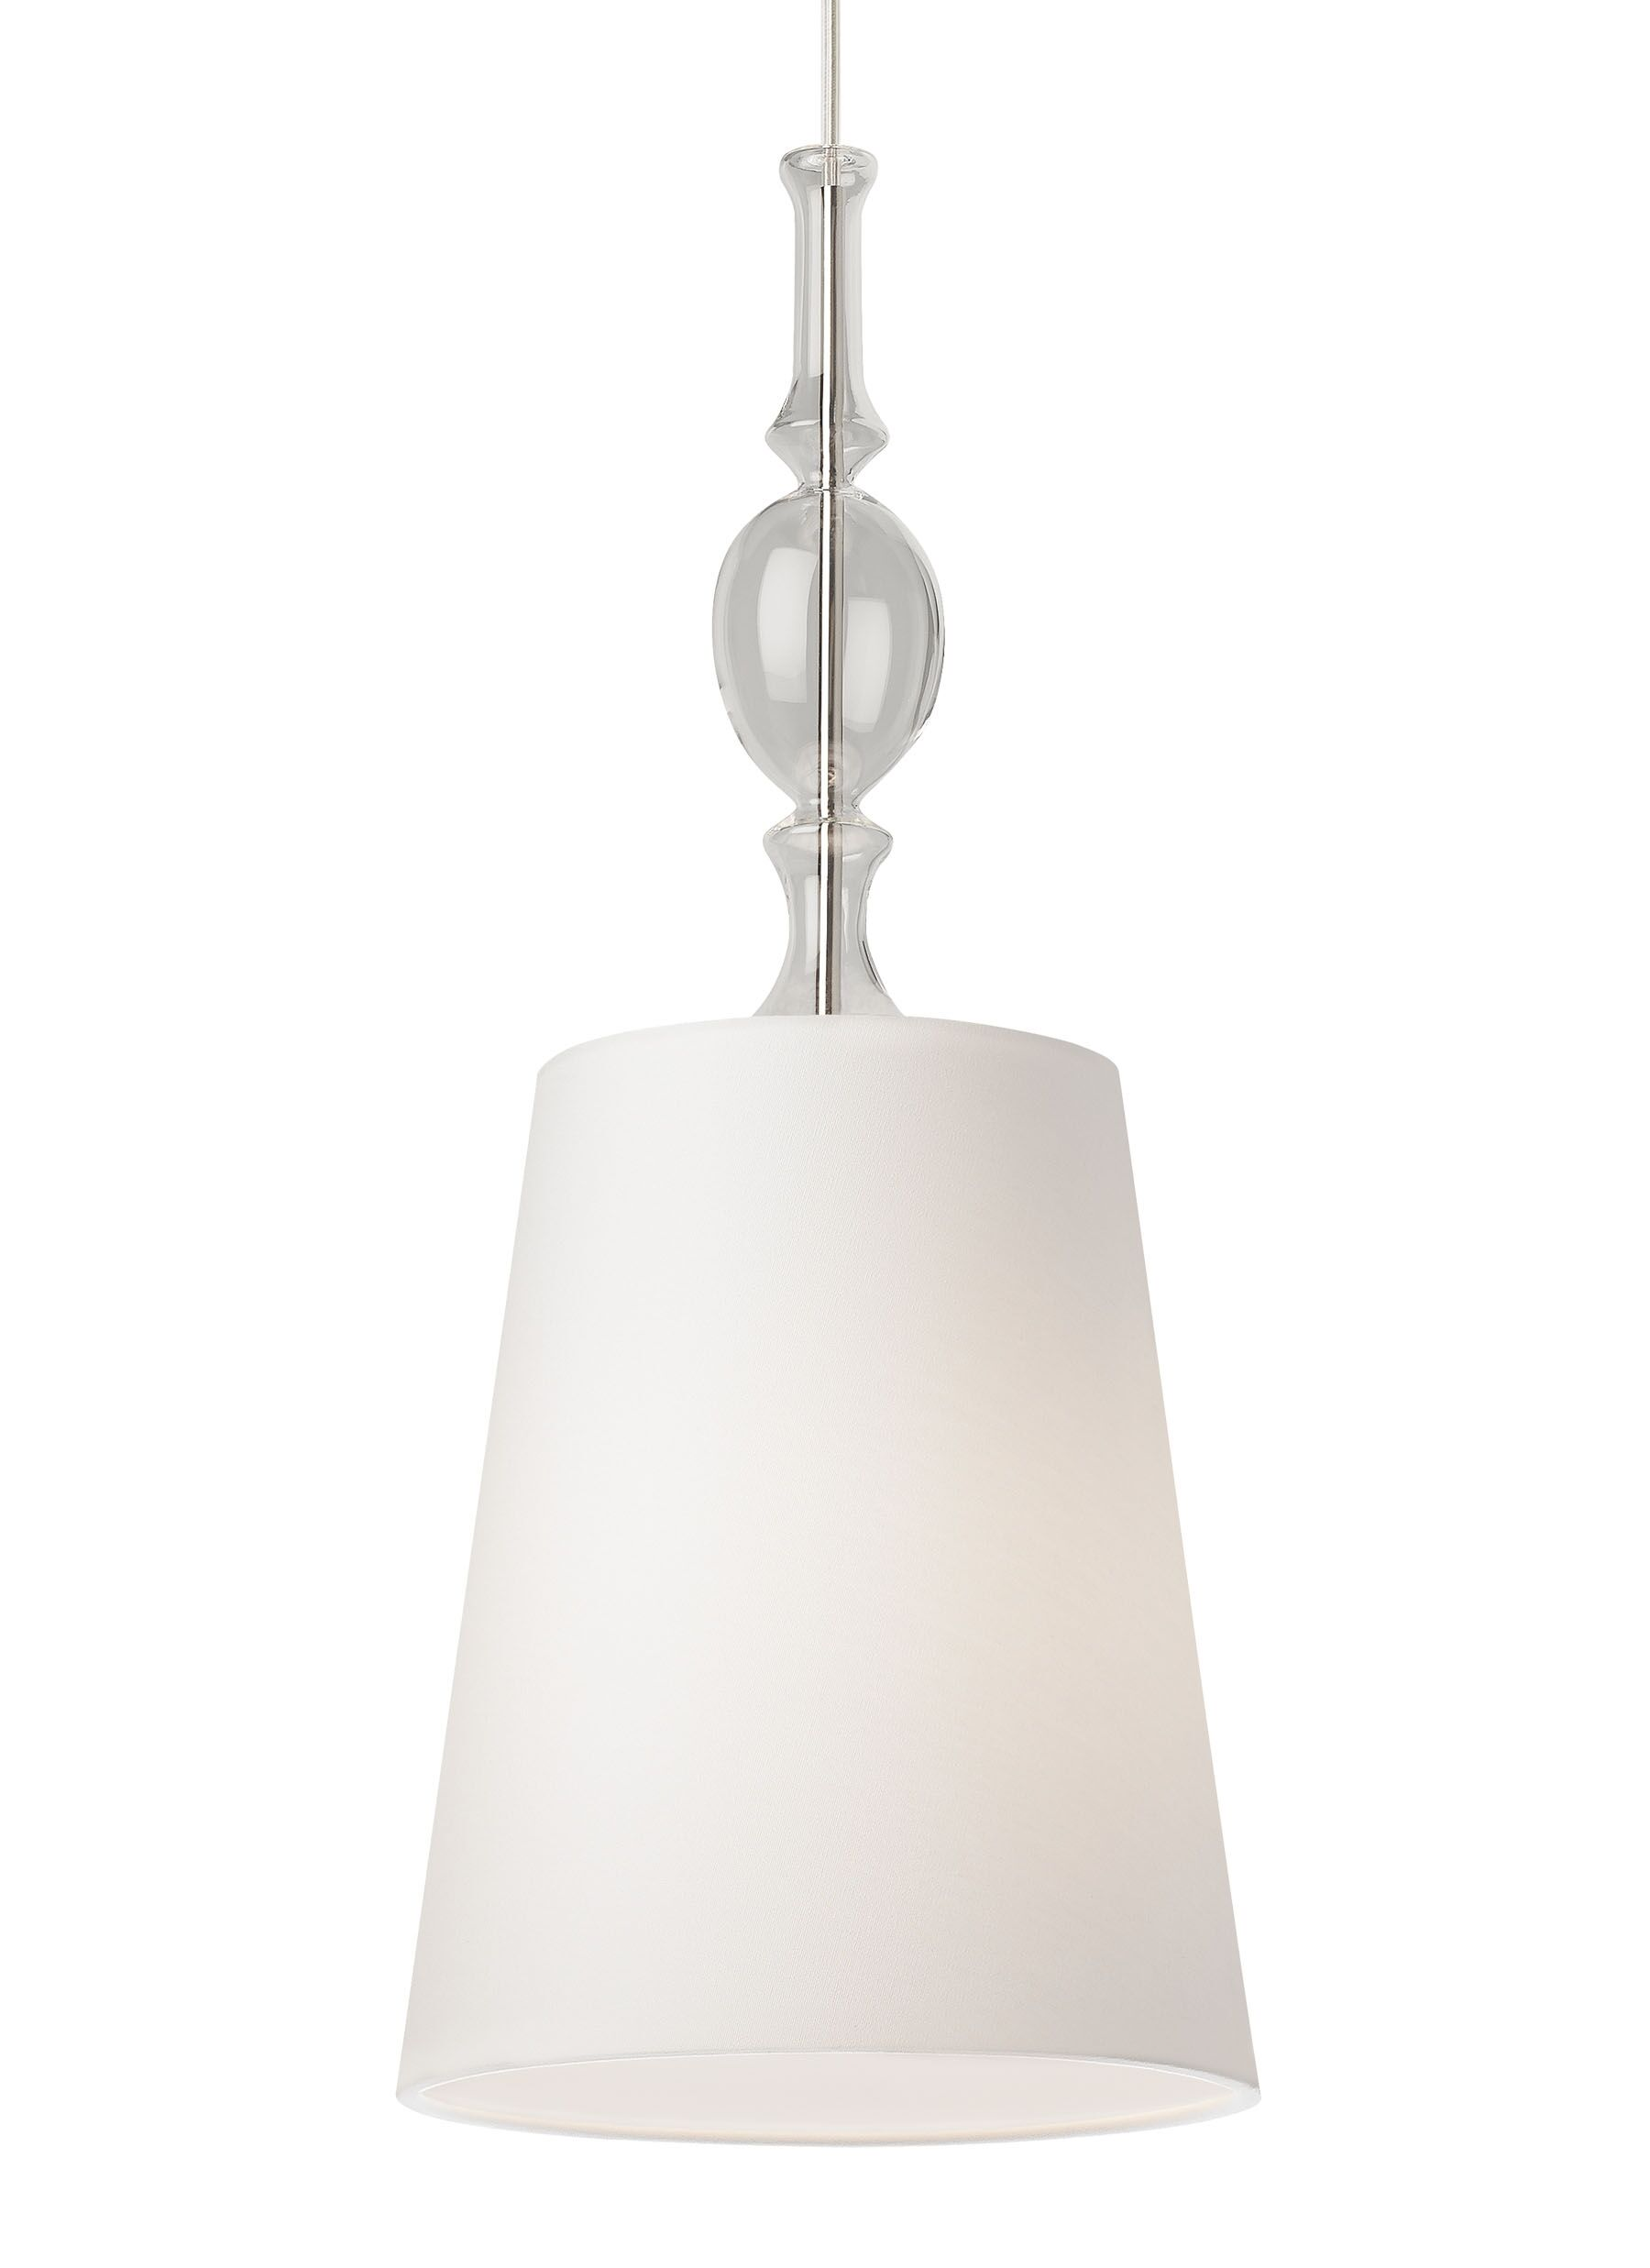 Iliana 1-Light Cone Pendant Bulb Type: Compact Fluorescent, Finish: Antique Bronze, Shade Color: White